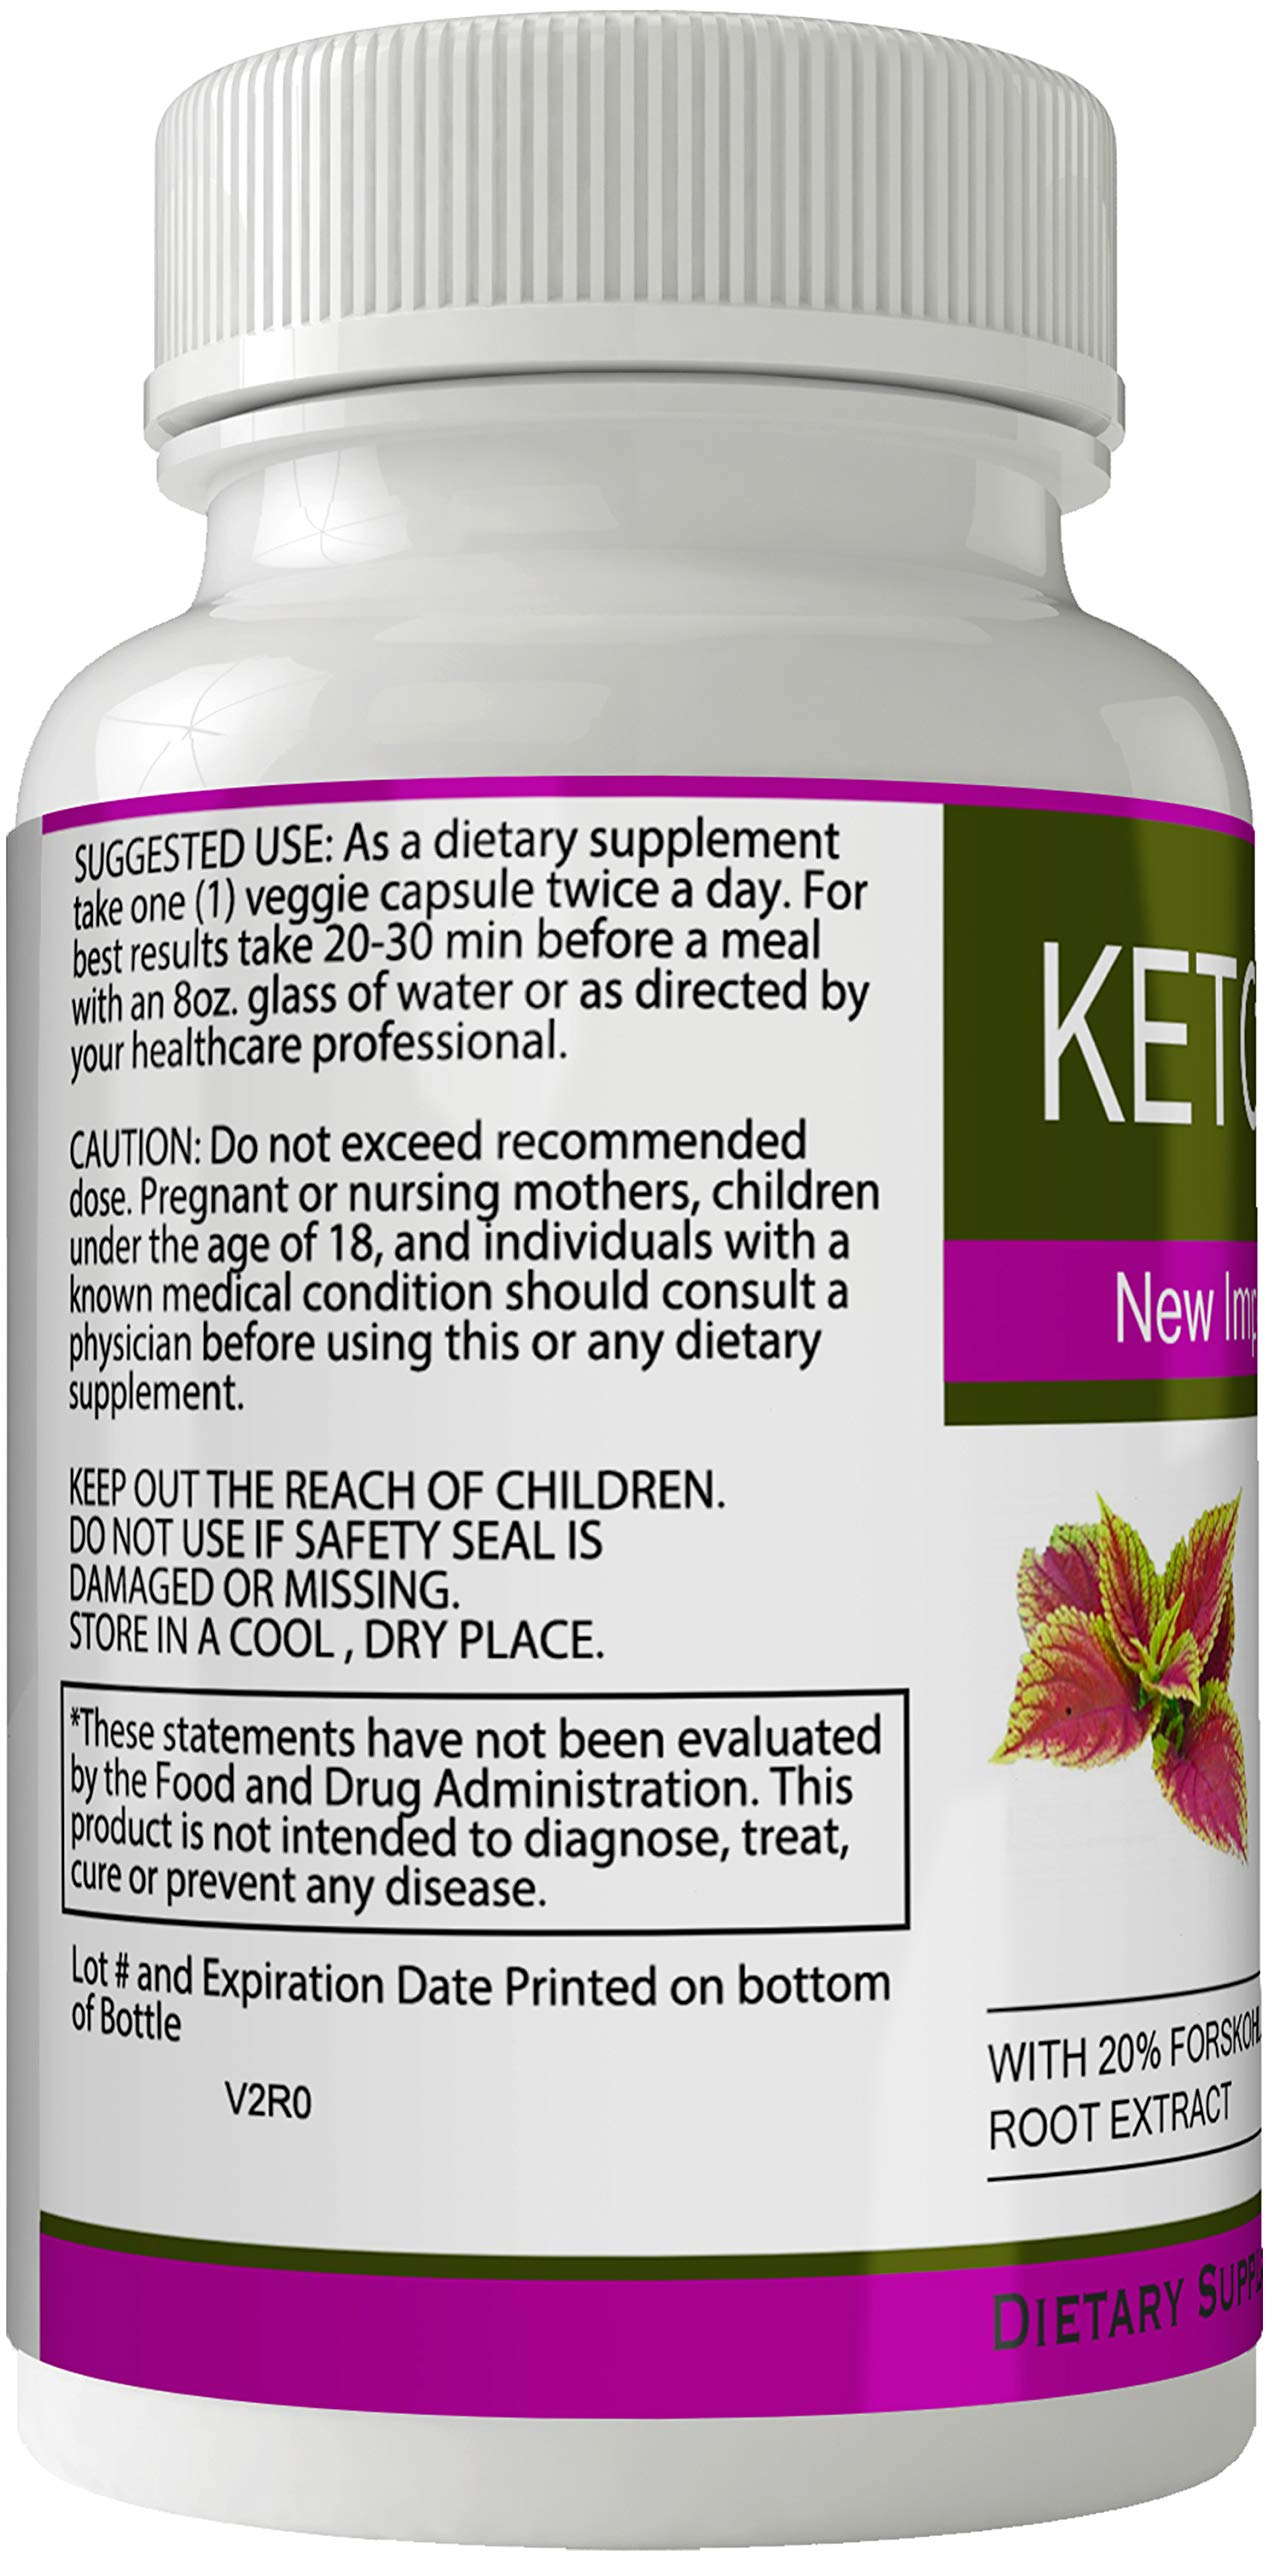 Ketobloom Forskolin for Weight Loss Diet Pills Supplement Capsules with Premium Forskolin Extract Tablets   Keto Bloom High Quality Natural Weightloss by nutra4health LLC (Image #3)